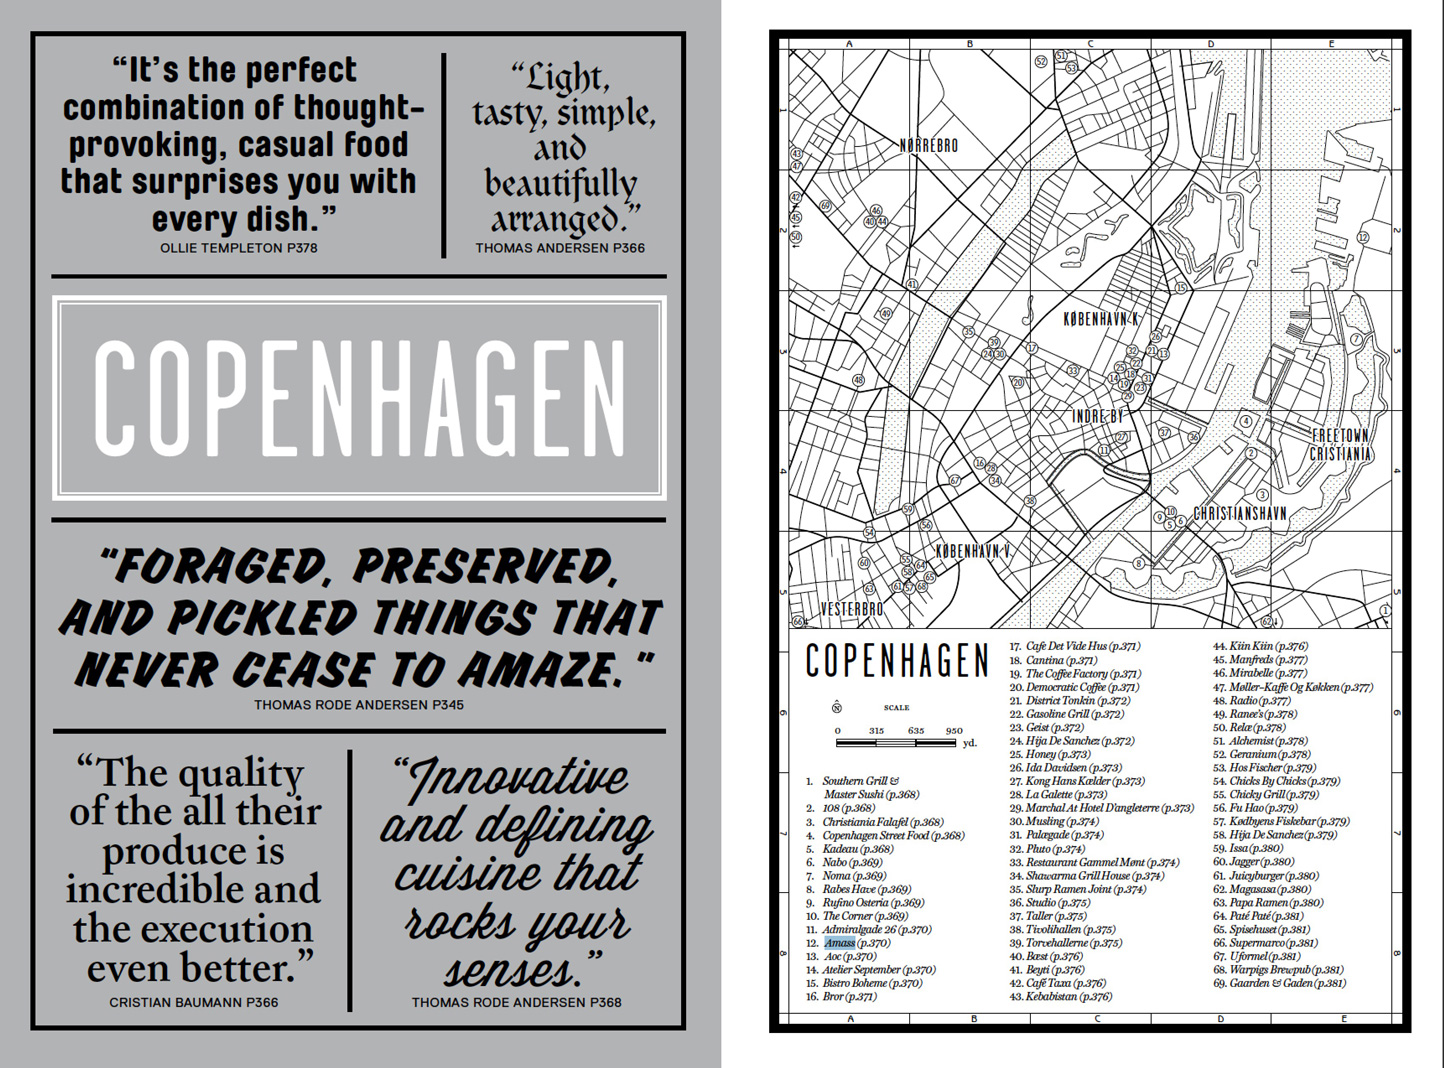 The Copenhagen introduction from our new book Where Chefs Eat